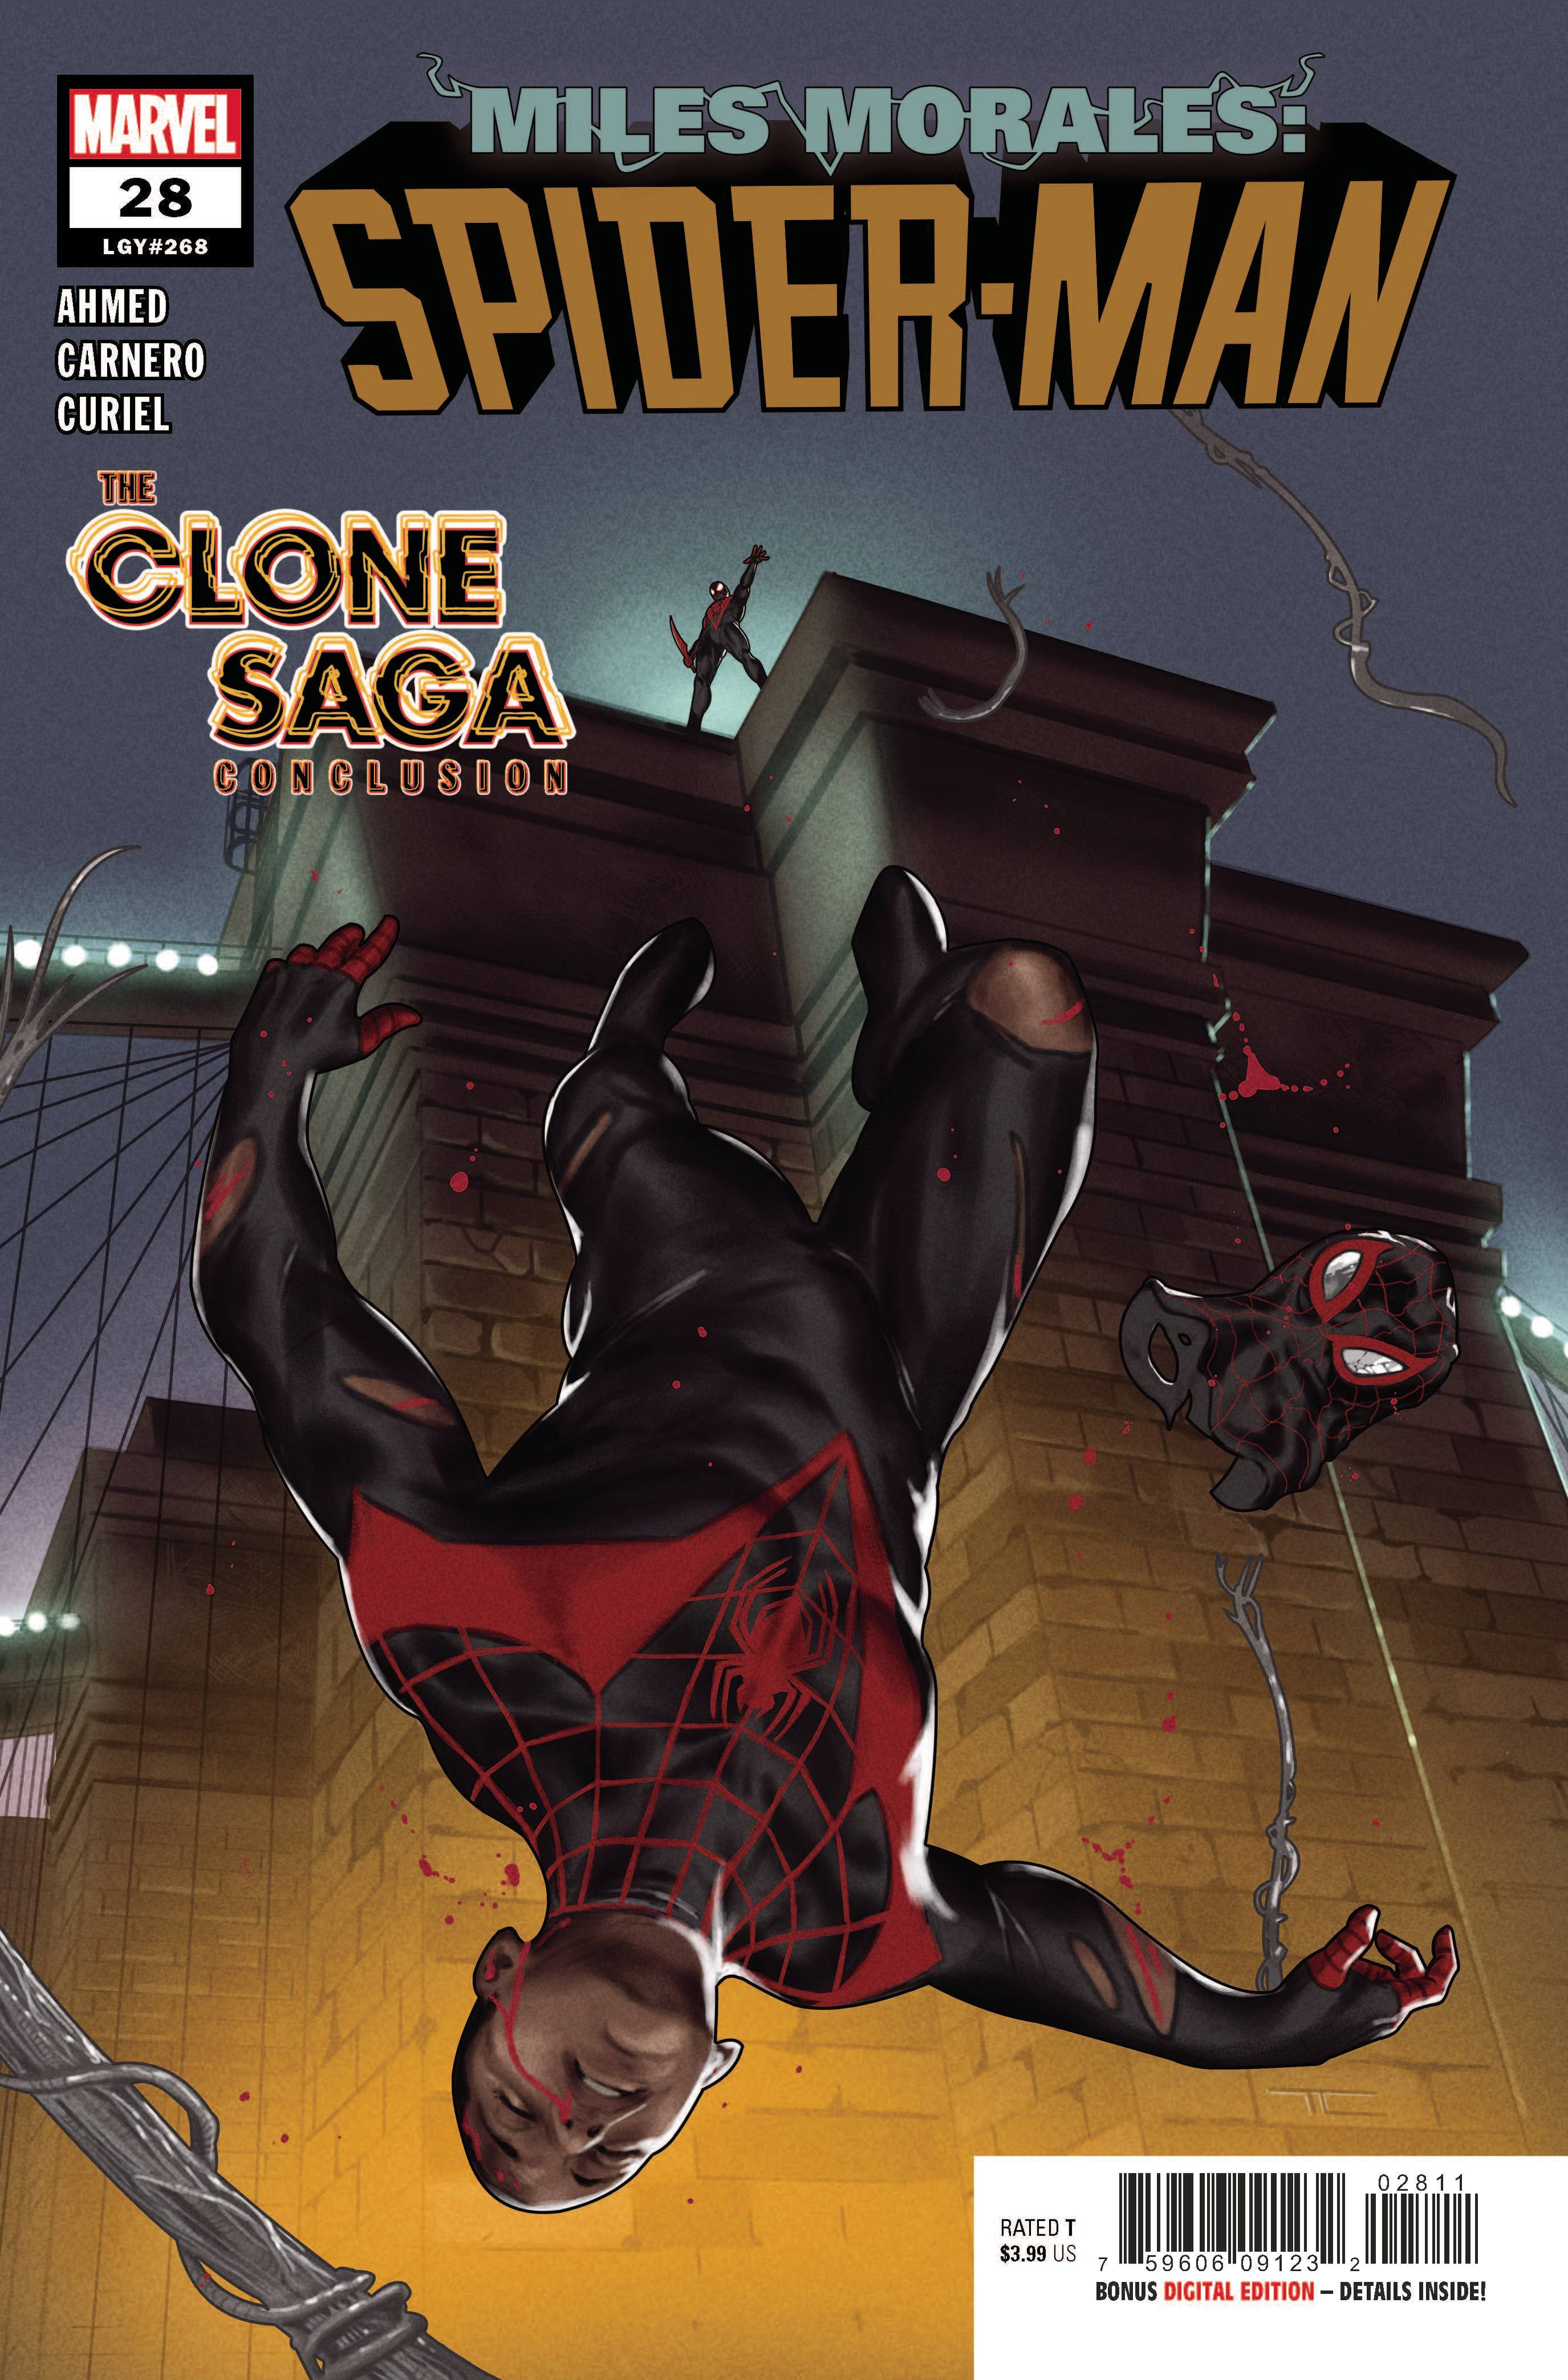 Miles Morales: Spider-Man #28 Cover A